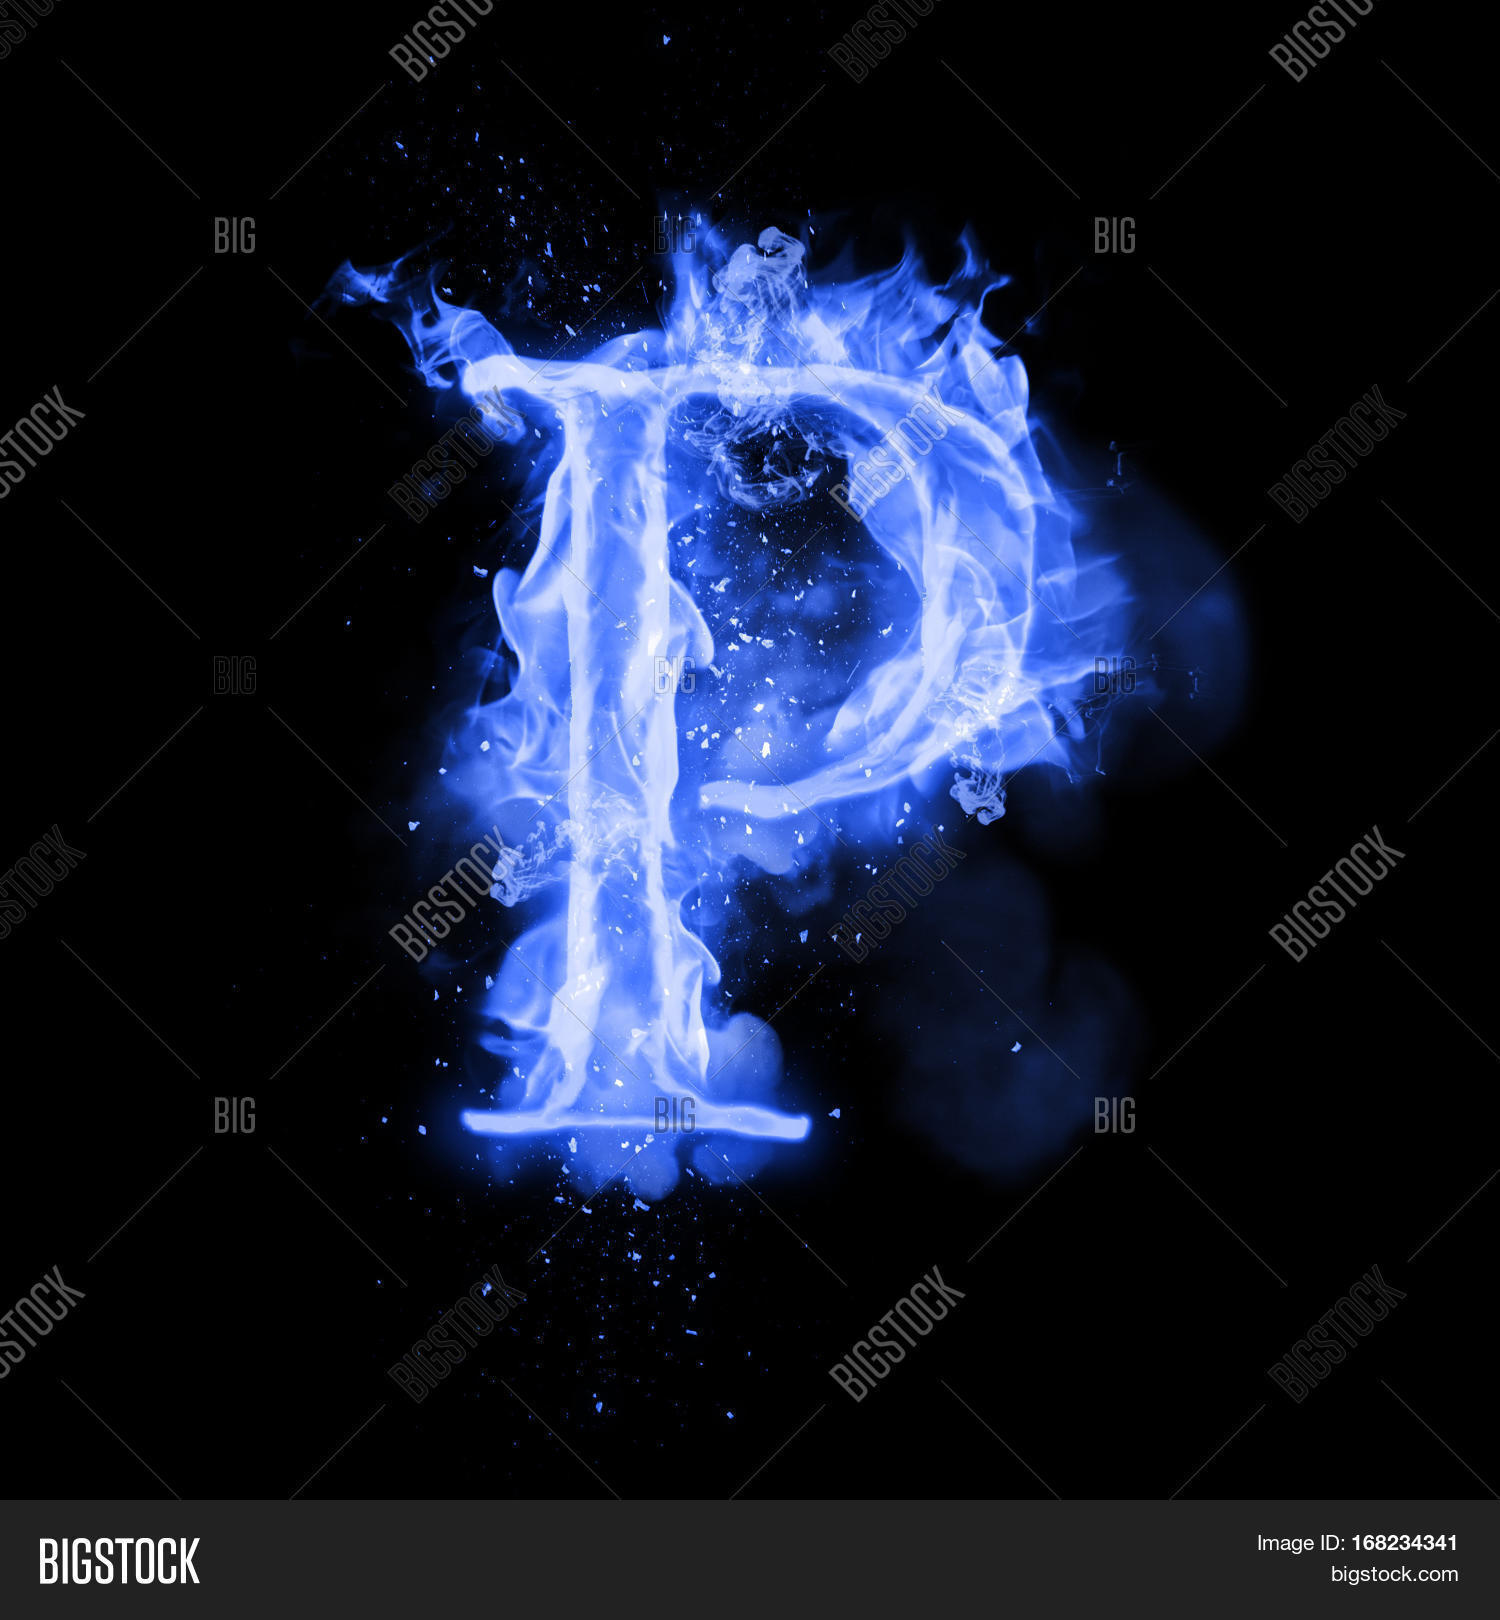 Fire Letter P Burning Image Photo Free Trial Bigstock